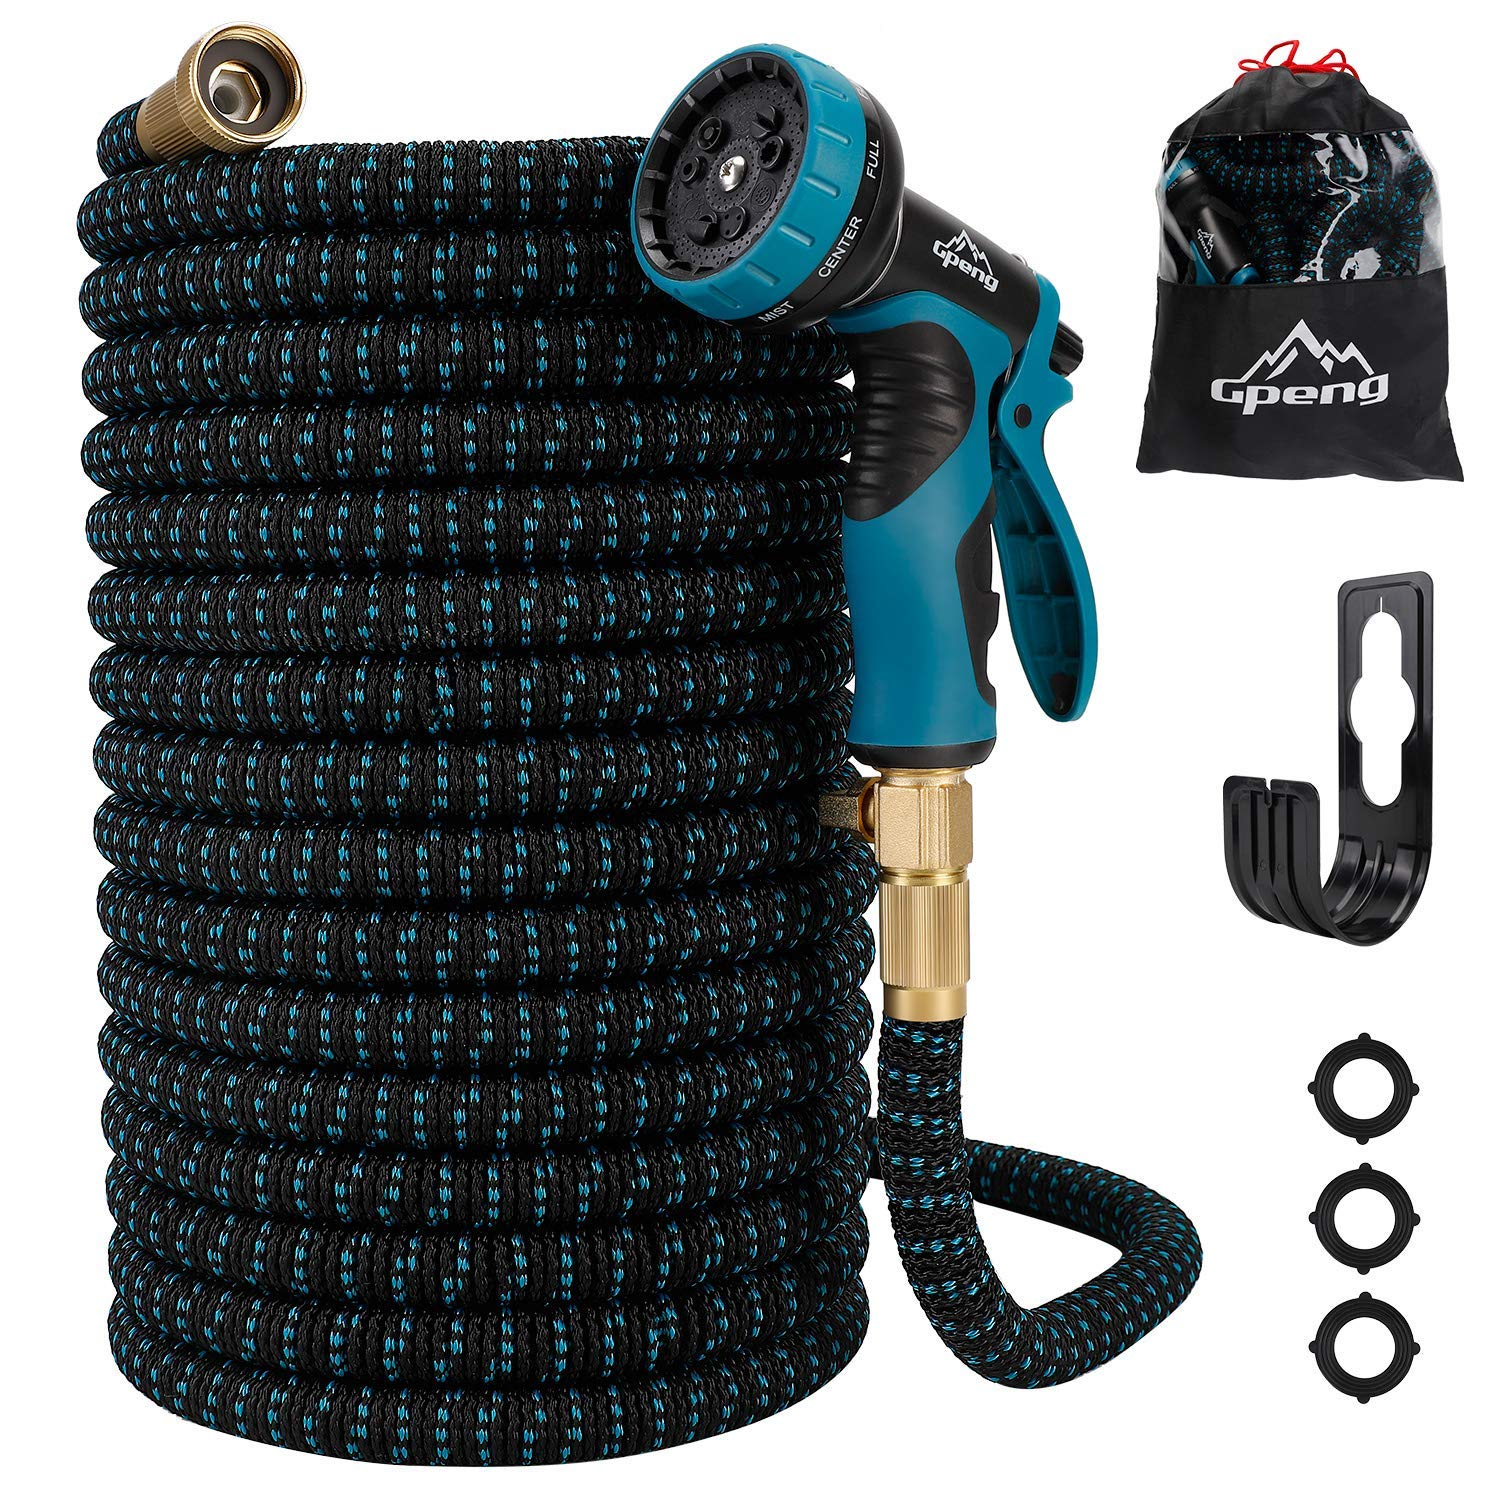 """Gpeng Expandable Garden Hose 50ft/100ft [Upgraded 2019], Lightweight Expanding Garden Water Hose with 3/4"""" Solid Brass Fittings, 9 Function Spray Nozzle"""